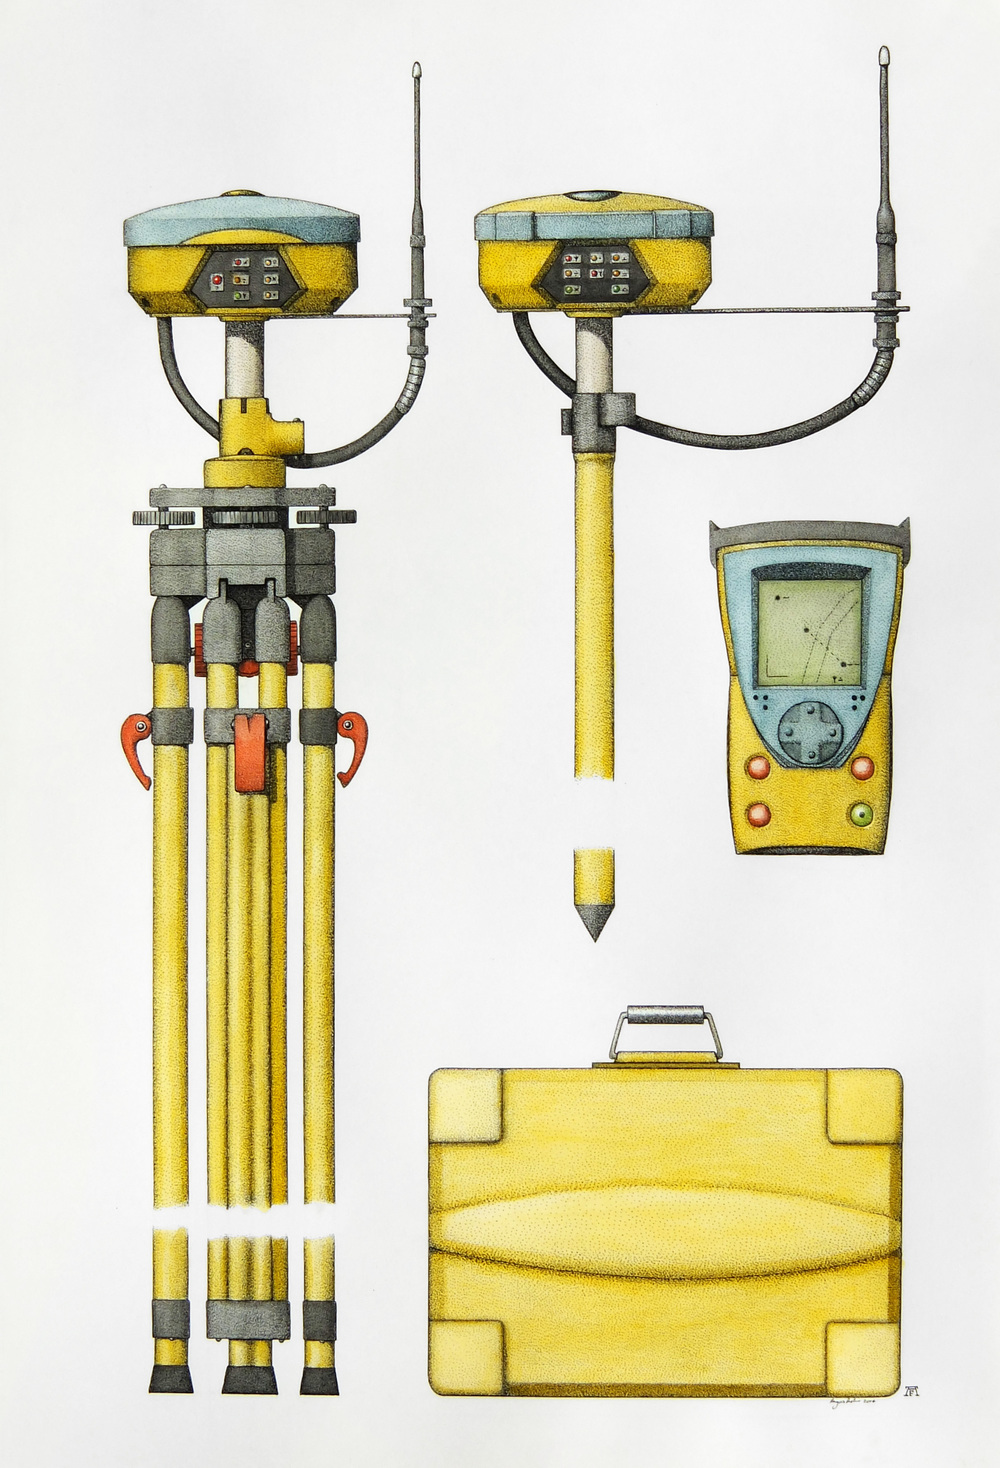 'GPS Surveying Equipment'